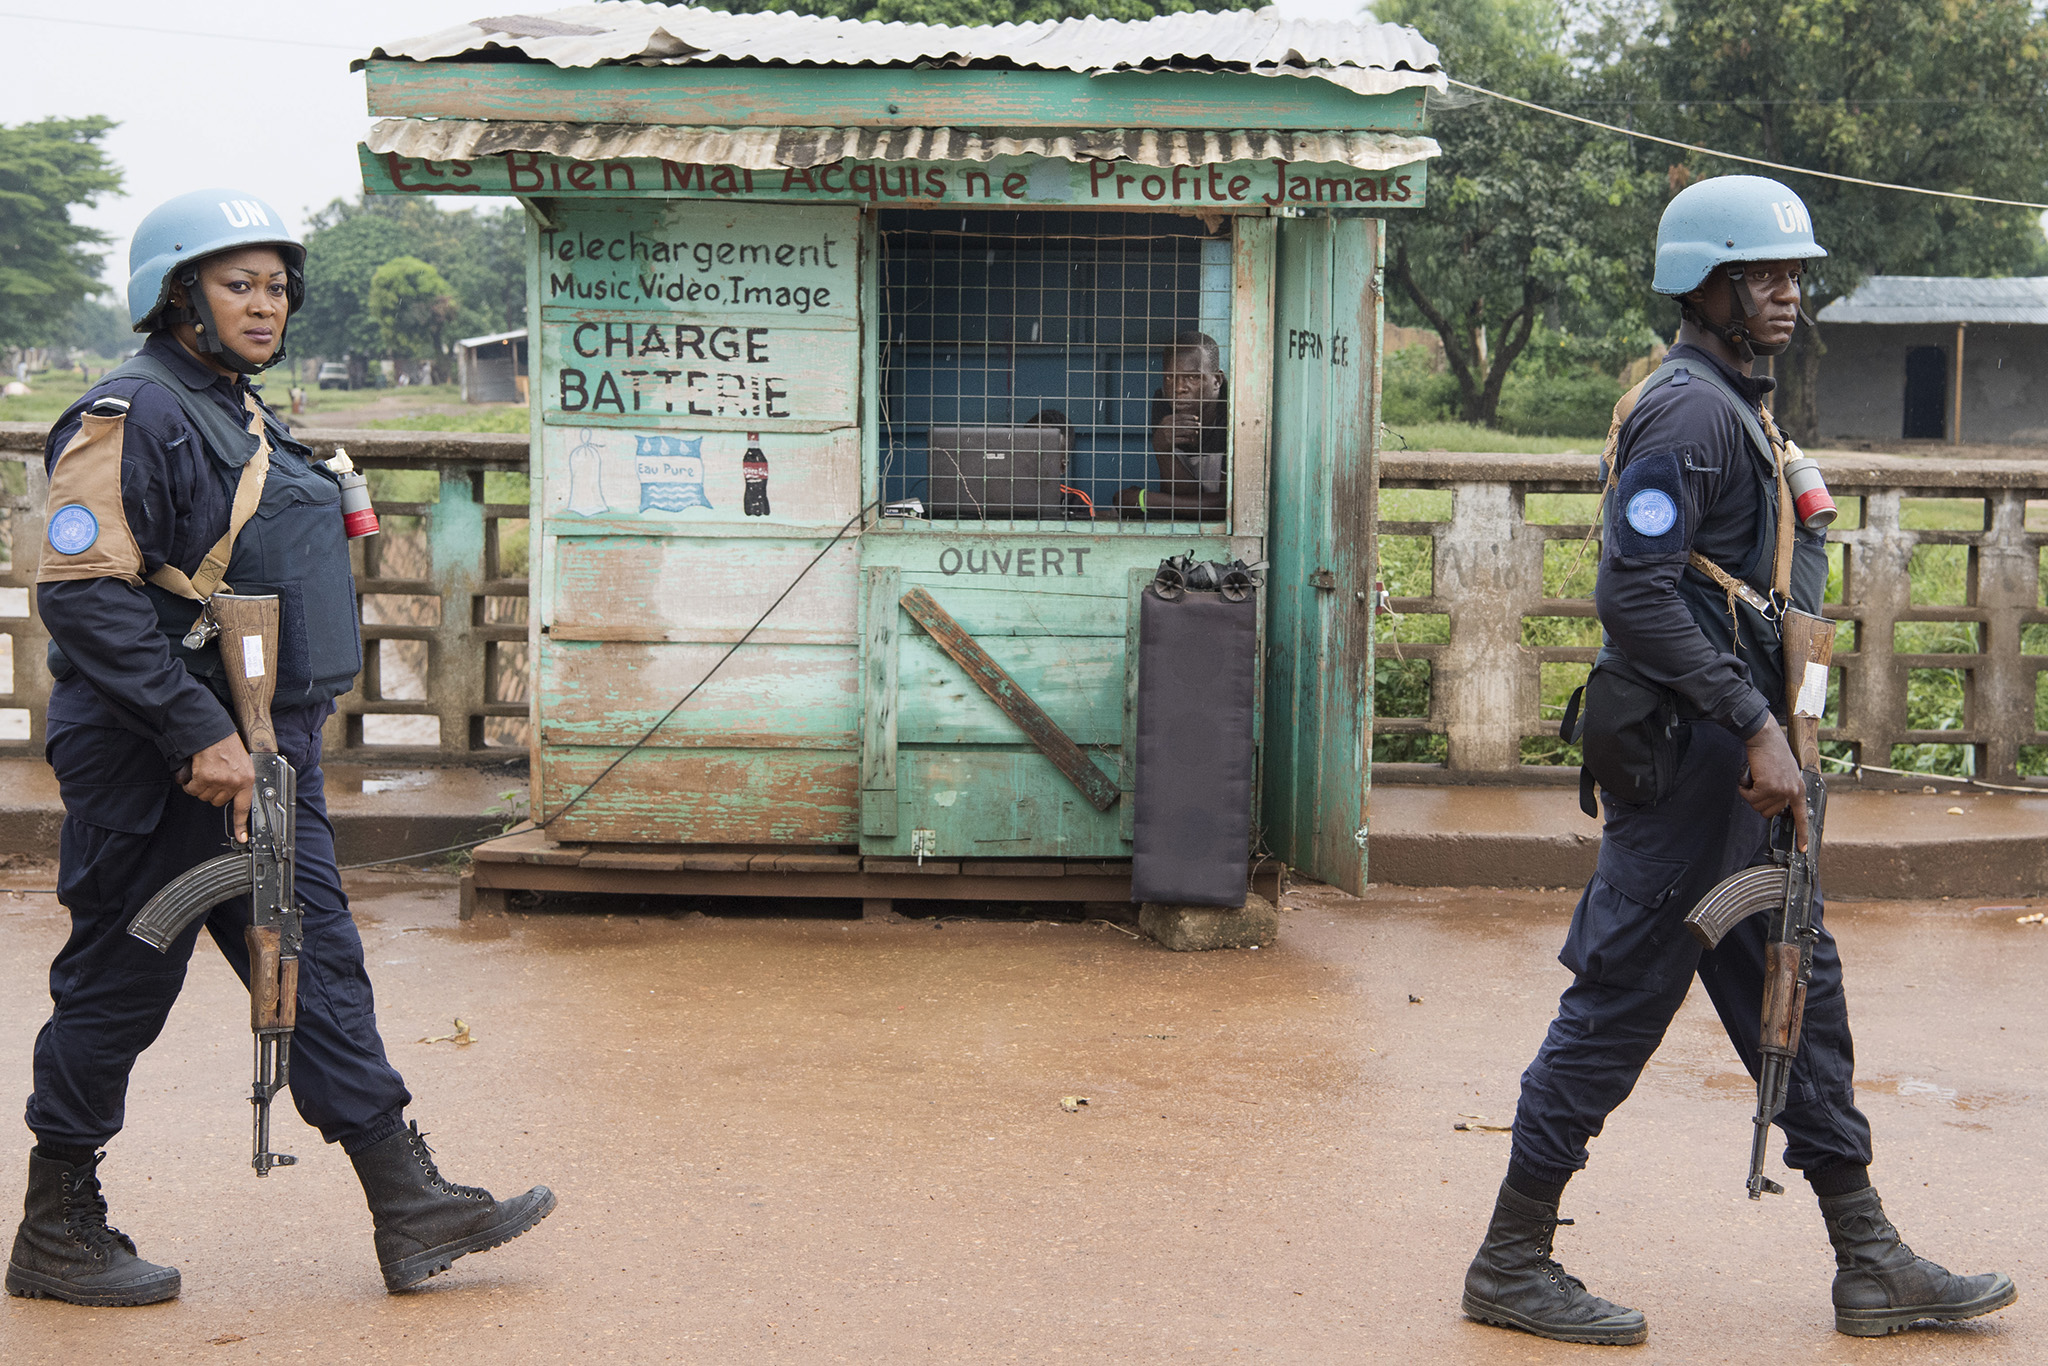 Armed UN Peacekeepers (one woman and one man) patrol the PK5 district in Bangui, Central African Republic